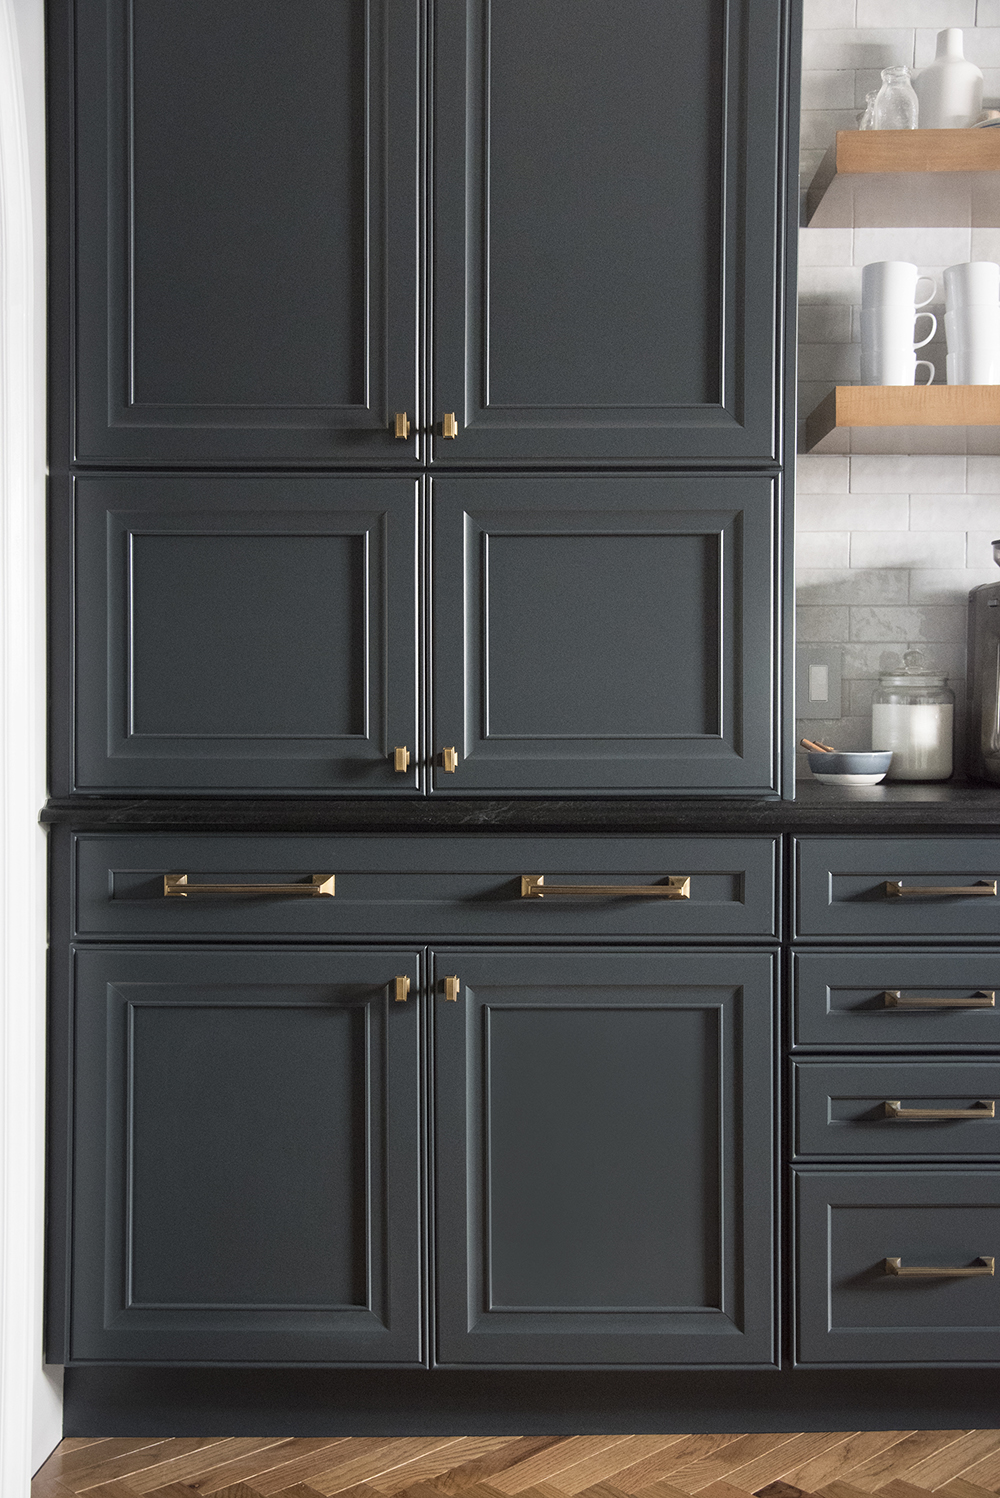 Large Pantry Cabinet In Dark Kitchen Room For Tuesday